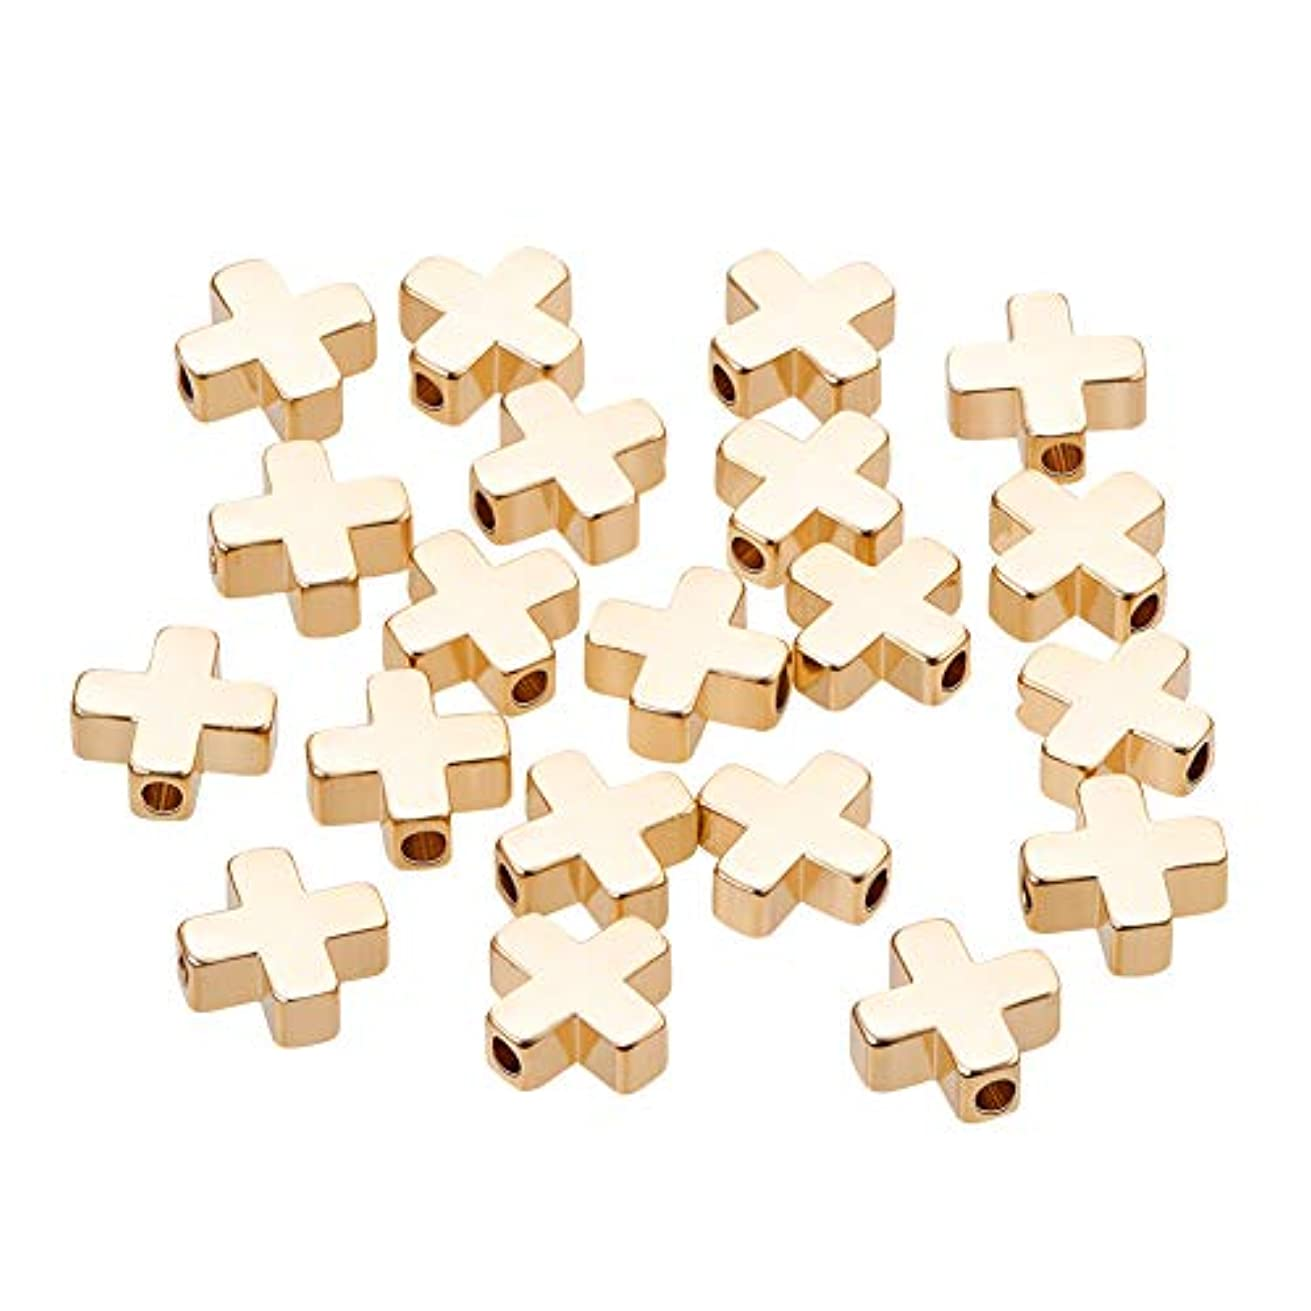 BENECREAT 20 PCS 18K Gold Plated Spacer Beads Metal Beads for DIY Jewelry Making Findings and Other Craft Work - 8x8x3mm, Cross Shape